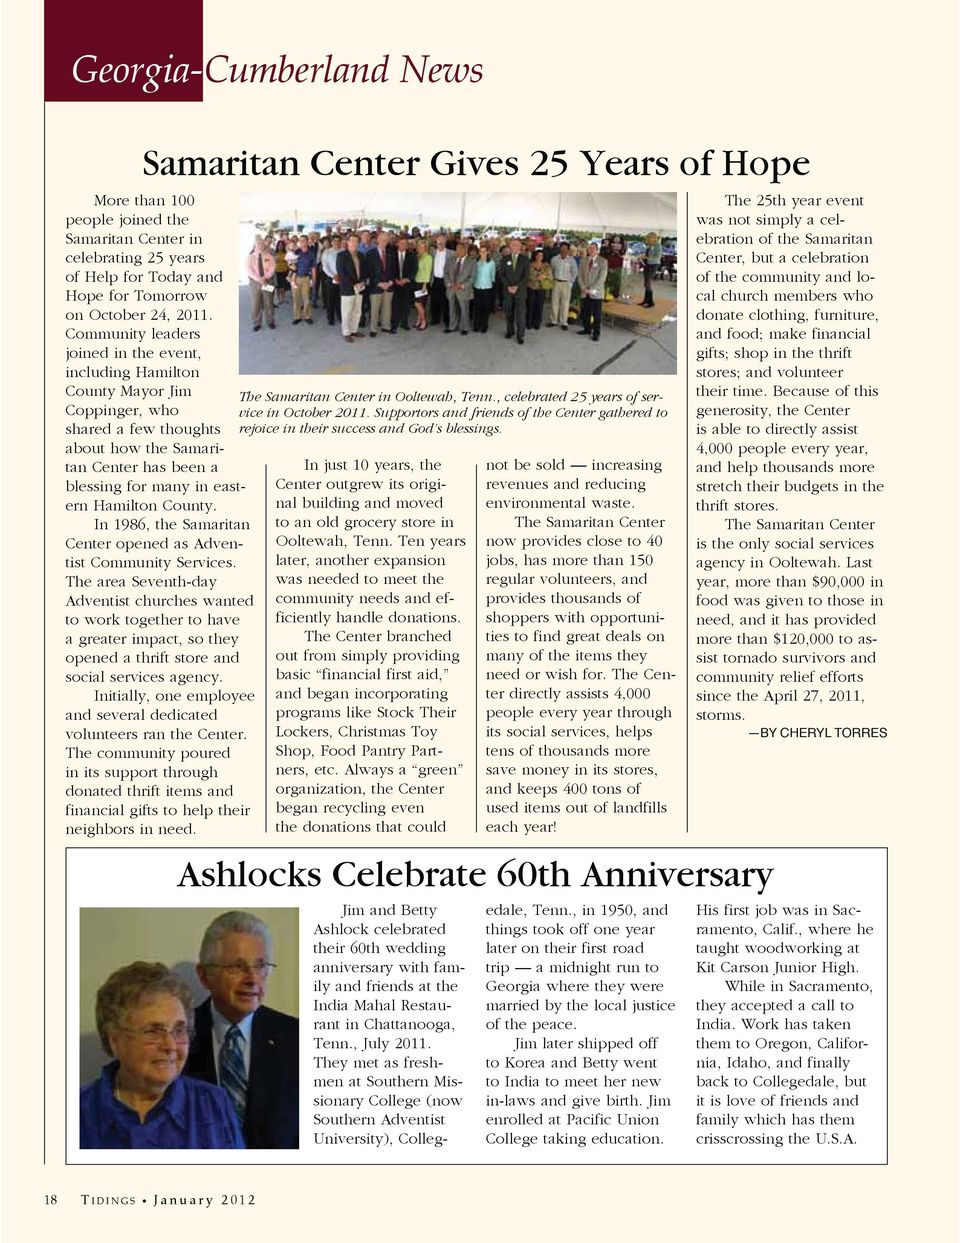 In 1986, the Samaritan Center opened as Adventist Community Services.